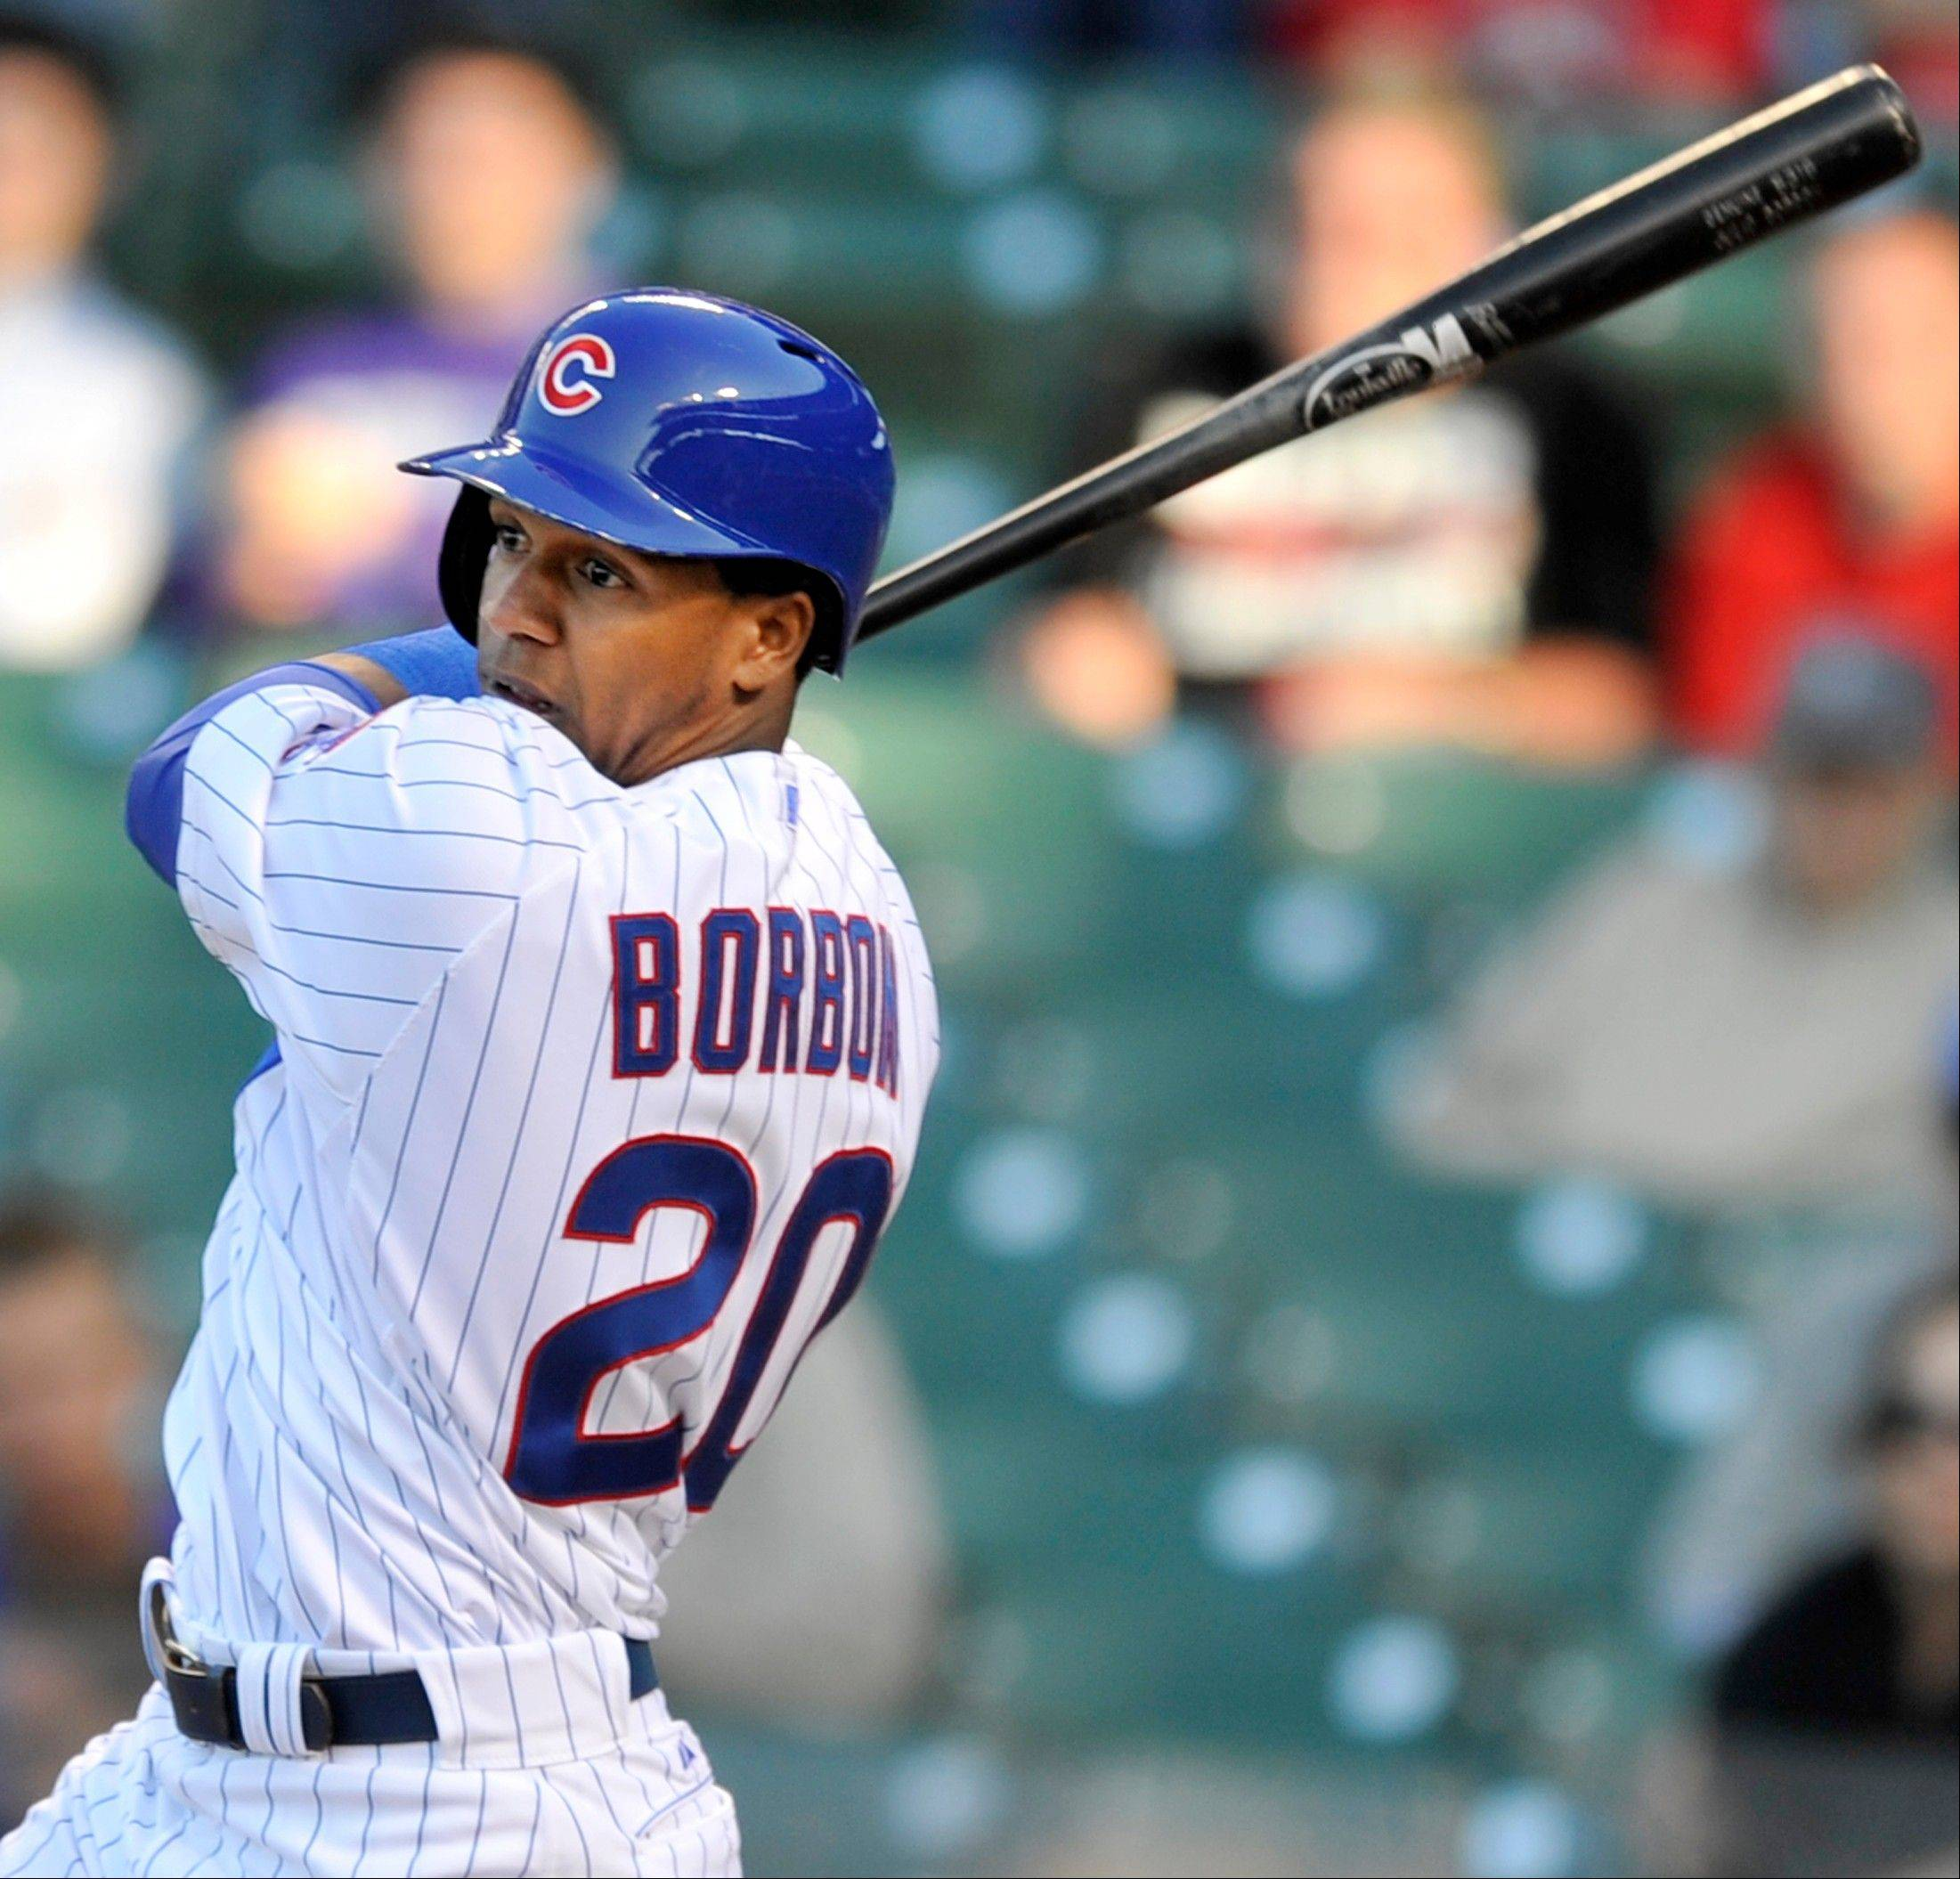 Chicago Cubs' Julio Borbon watches his walkoff-single to defeat the Cincinnati Reds 6-5 in fourteen innings of an MLB baseball game in Chicago, Thursday, June 13, 2013.